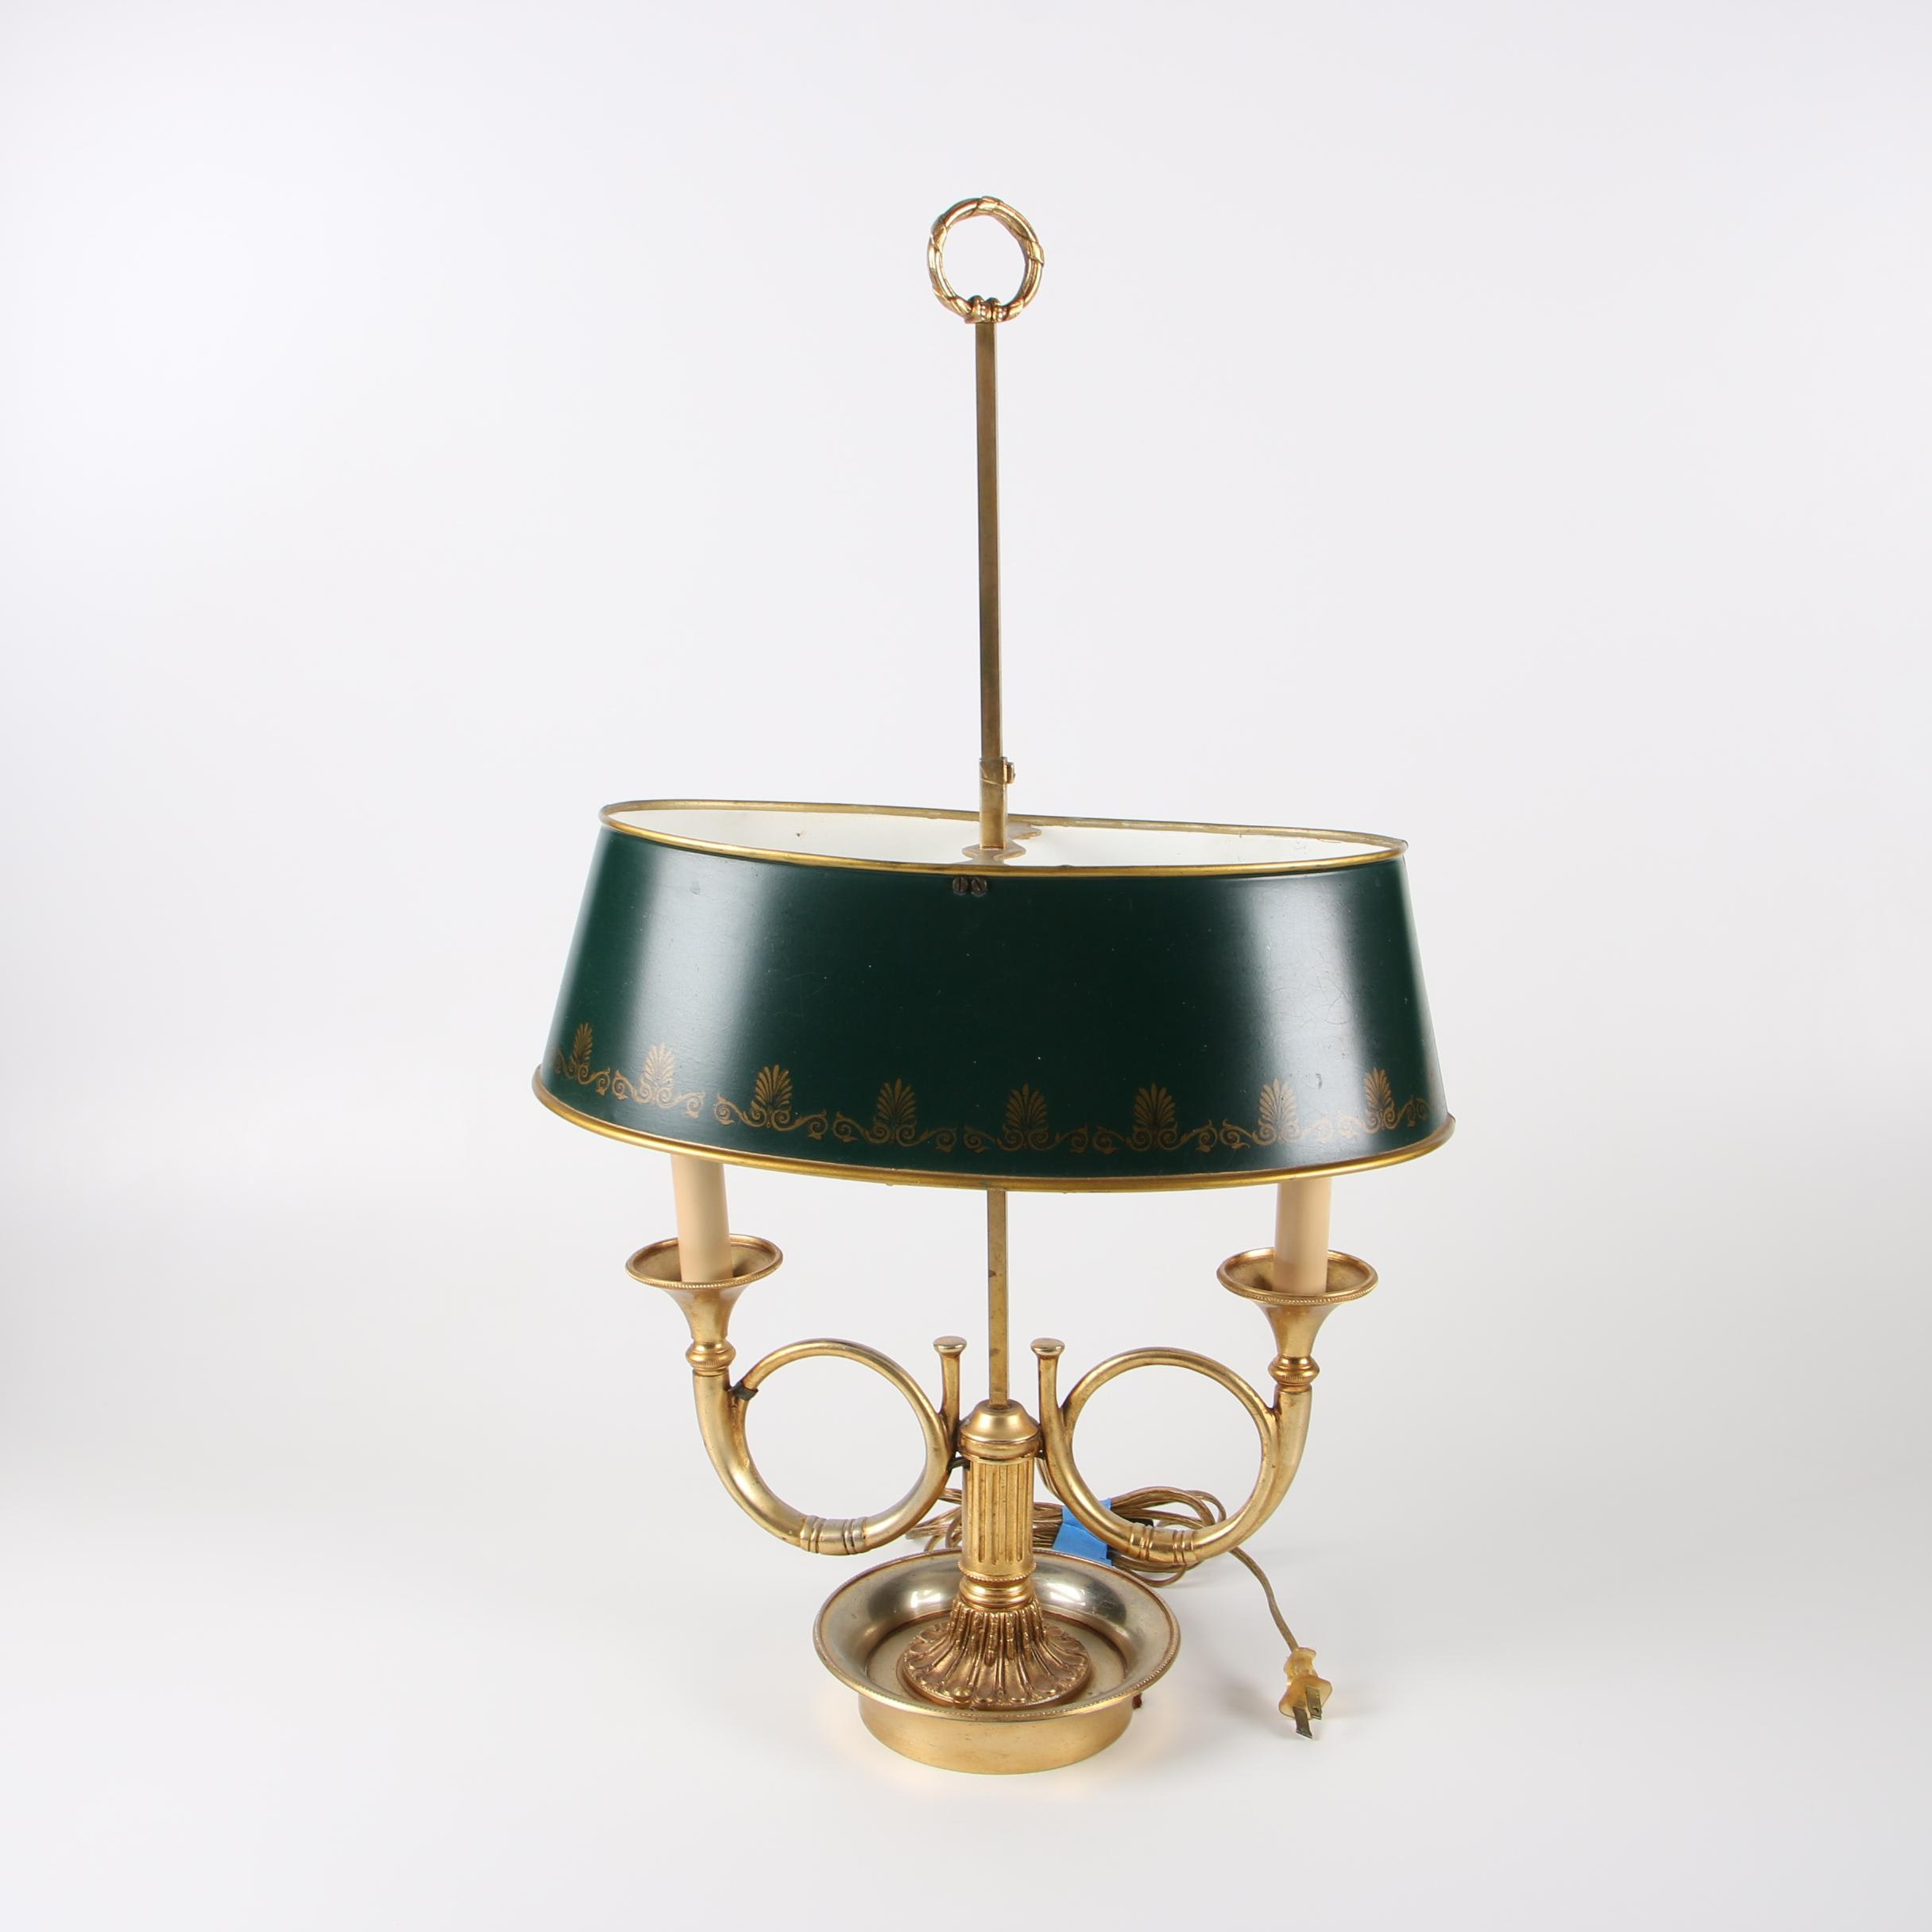 Empire Style Gilt Metal Hunting Horn Bouillotte Table Lamp with Tole Lamp Shade